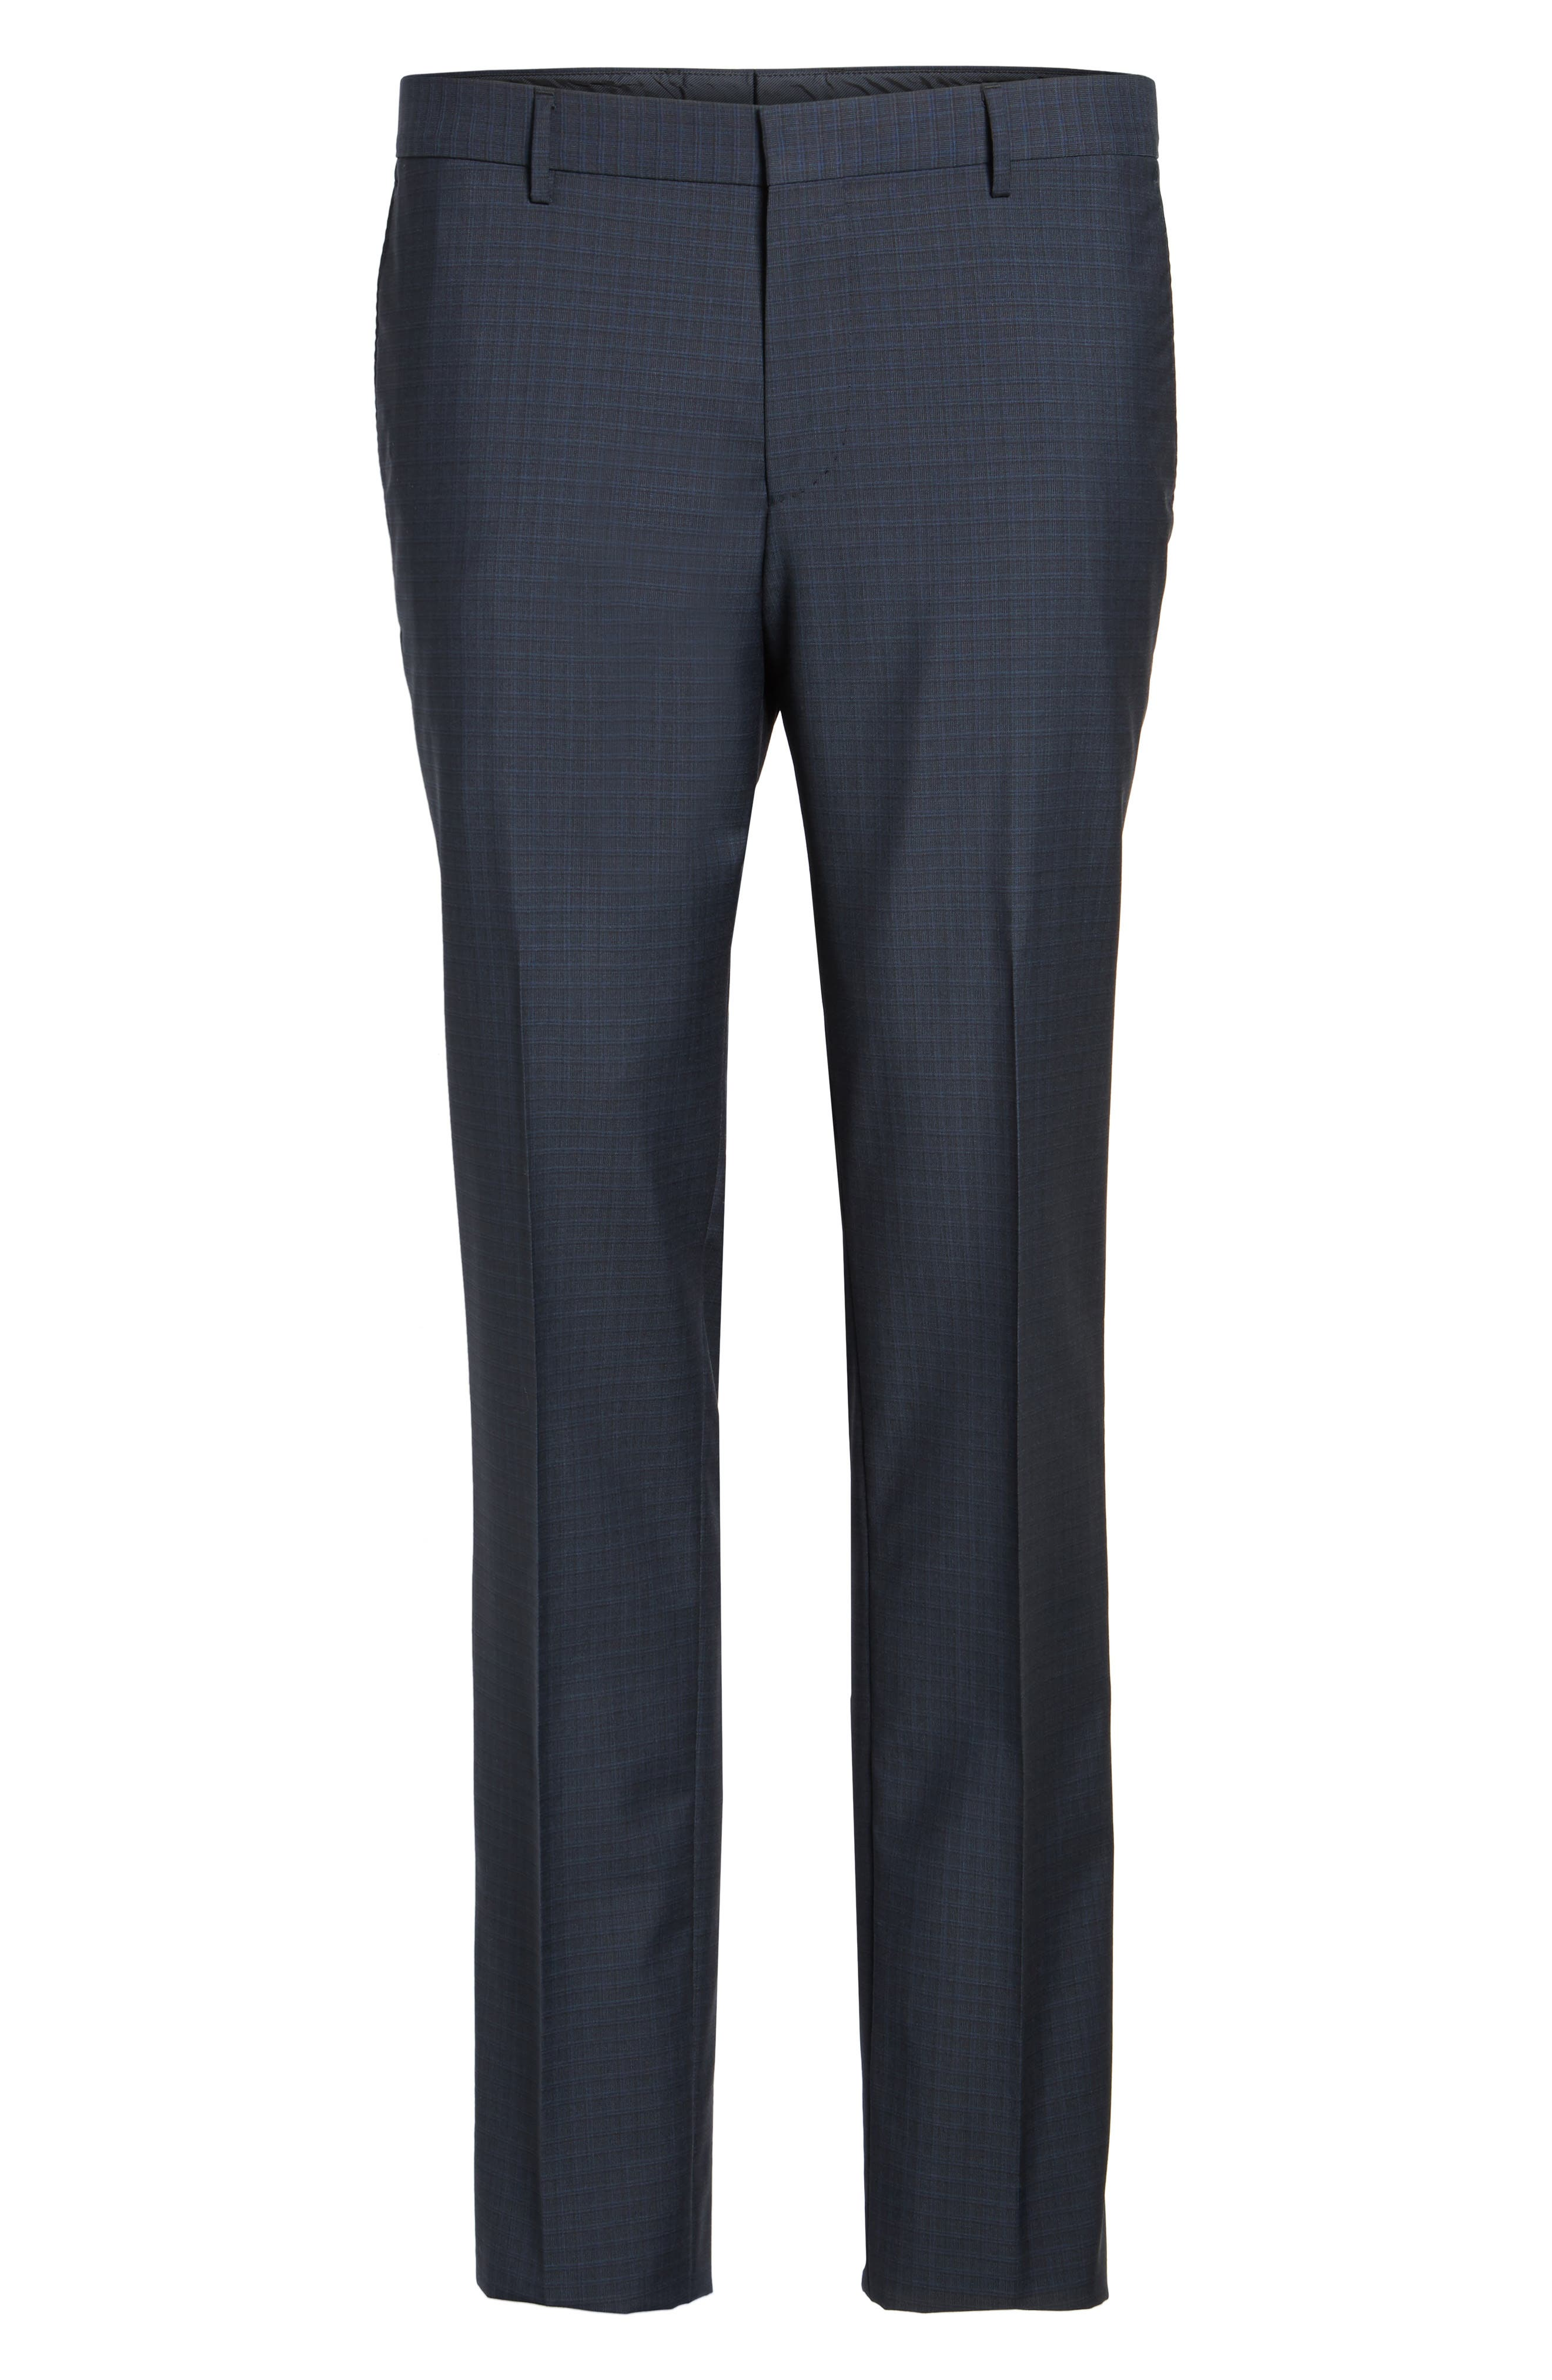 Benso Flat Front Check Wool Trousers,                             Alternate thumbnail 6, color,                             410